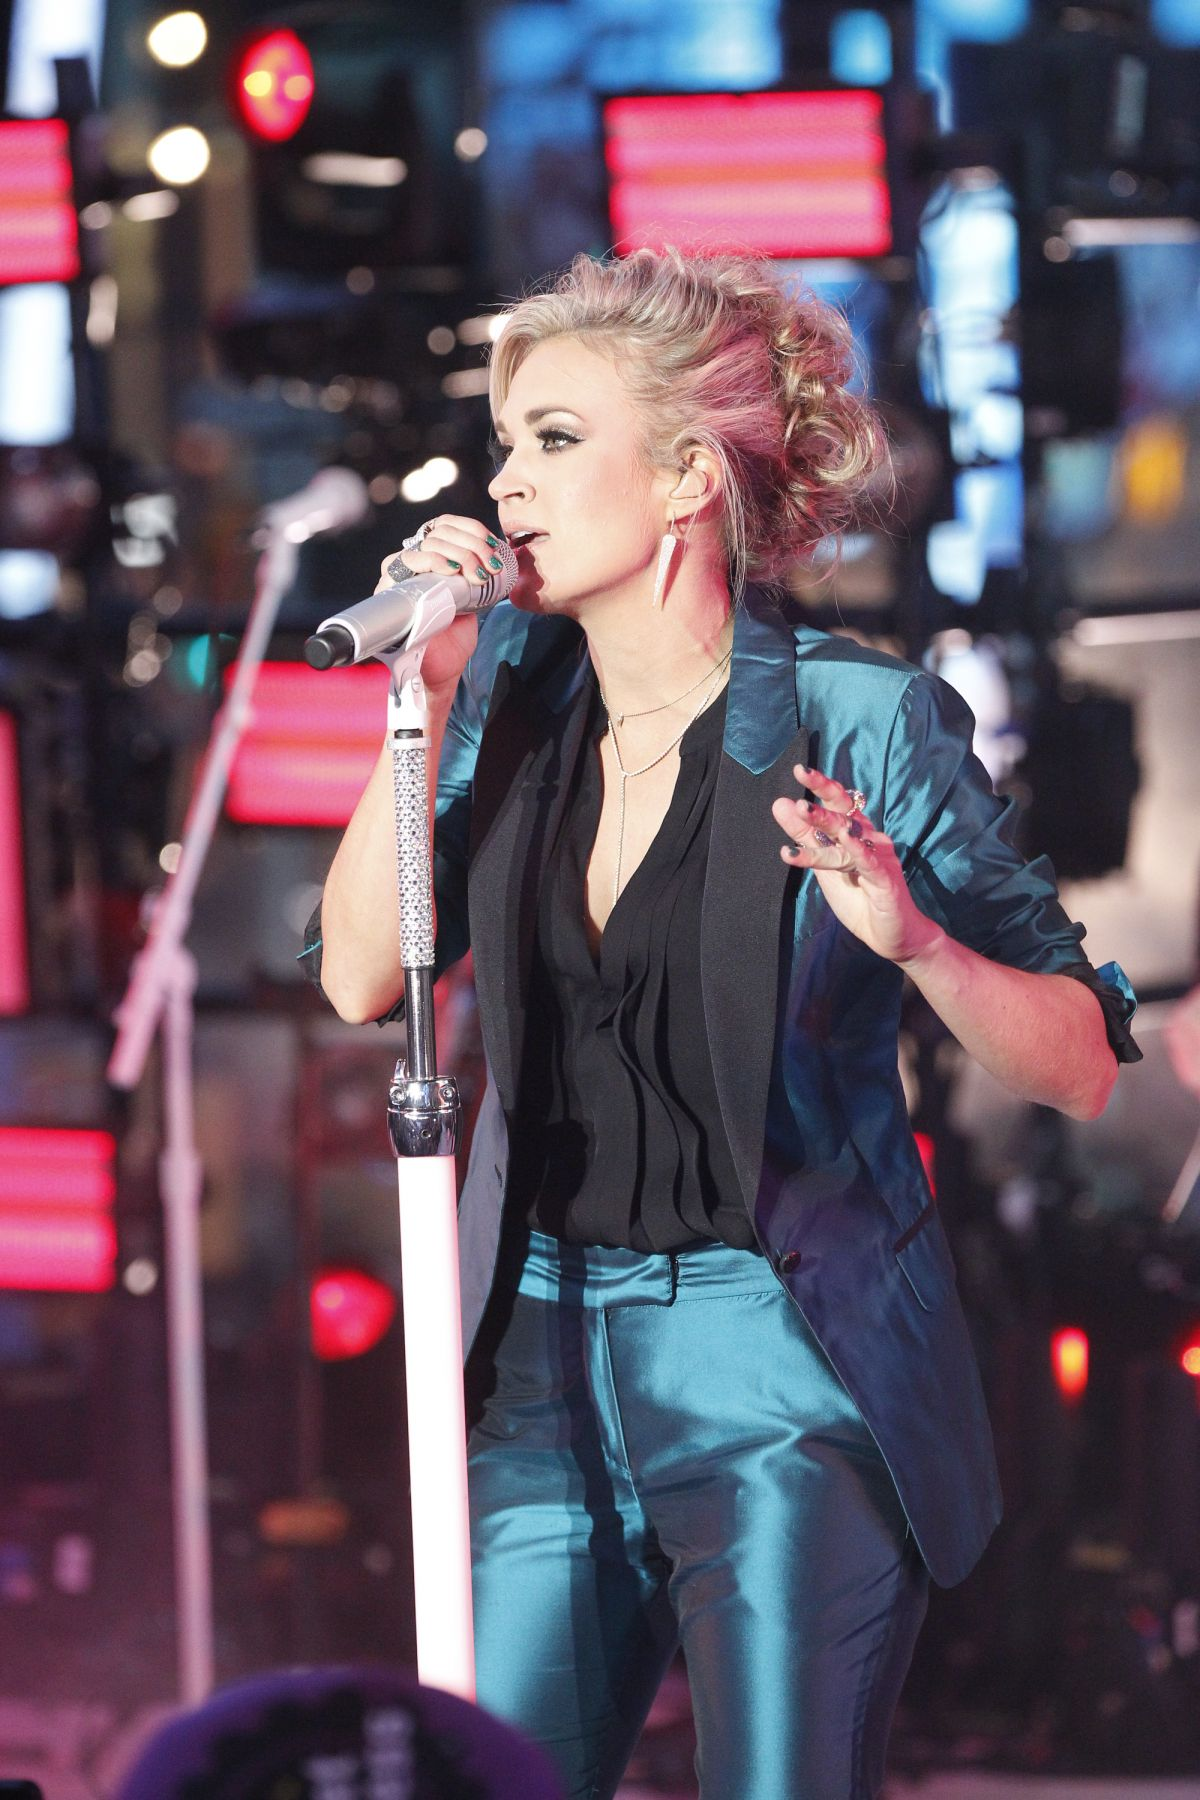 Carrie underwood performs at dick clarks pics